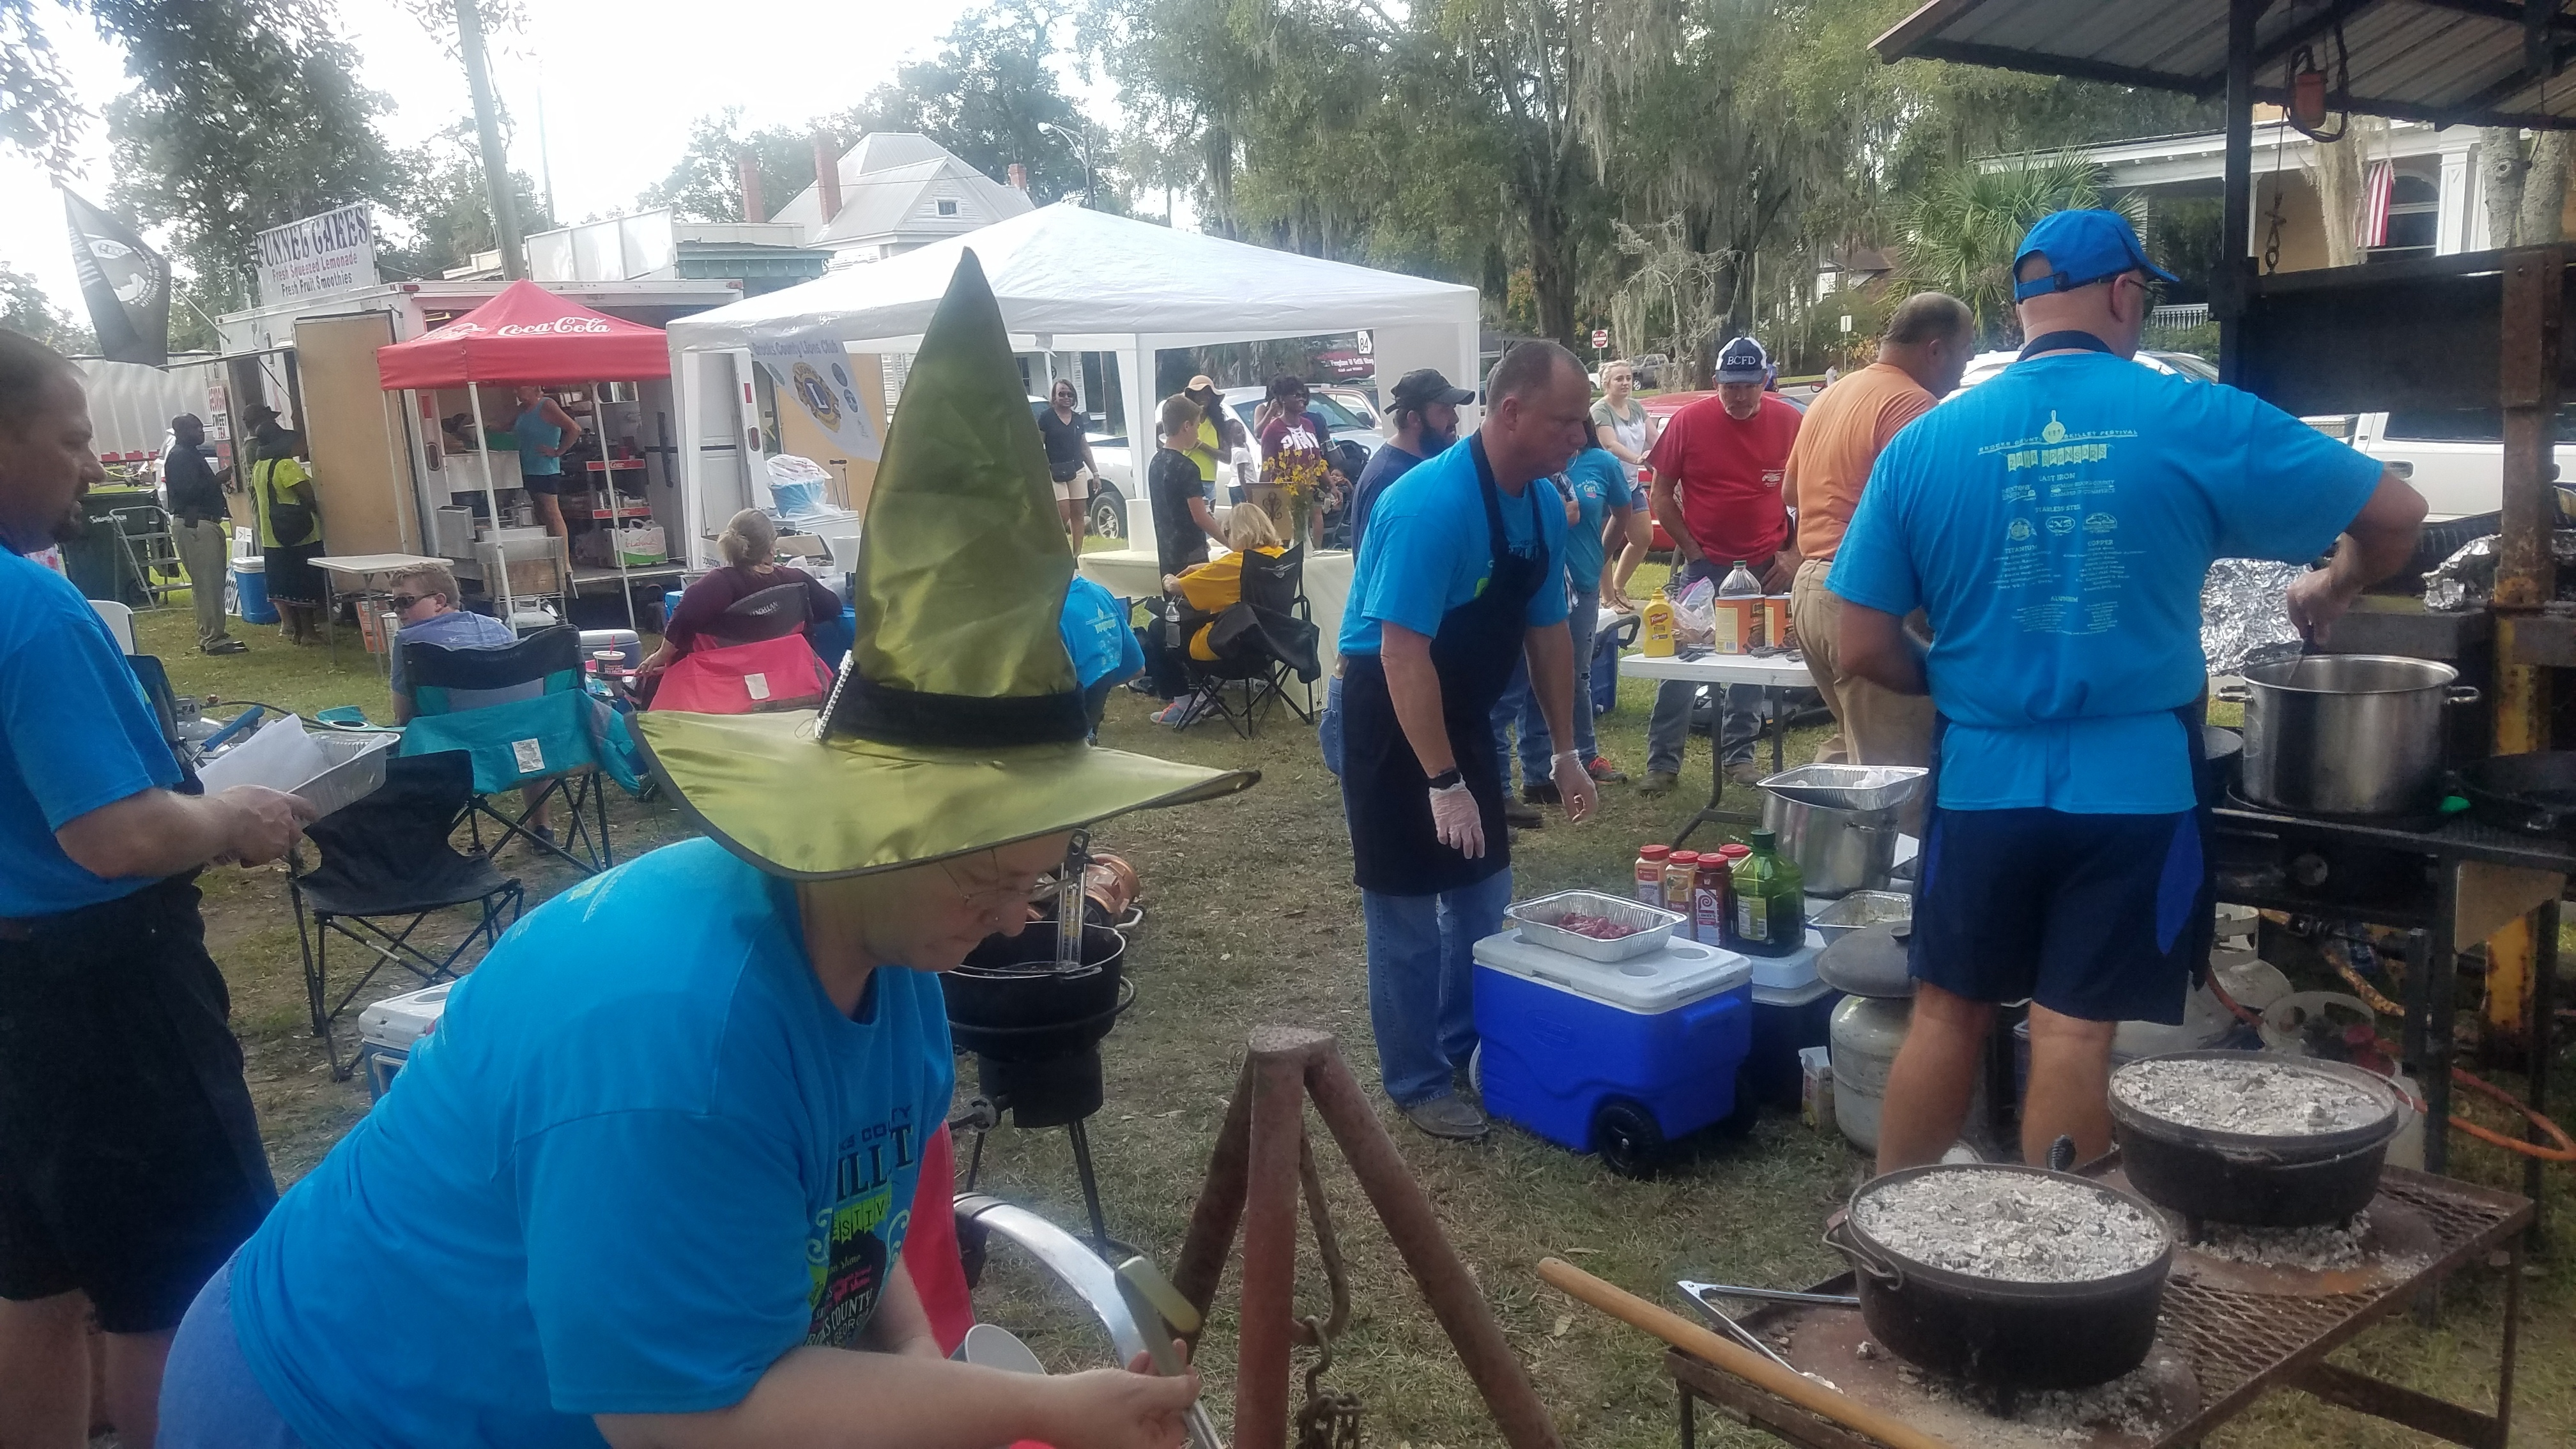 4032x2268 Horton clan cooking, Festival, in Pictures: Brooks County Skillet Festival, by John S. Quarterman, for WWALS.net, 20 October 2018